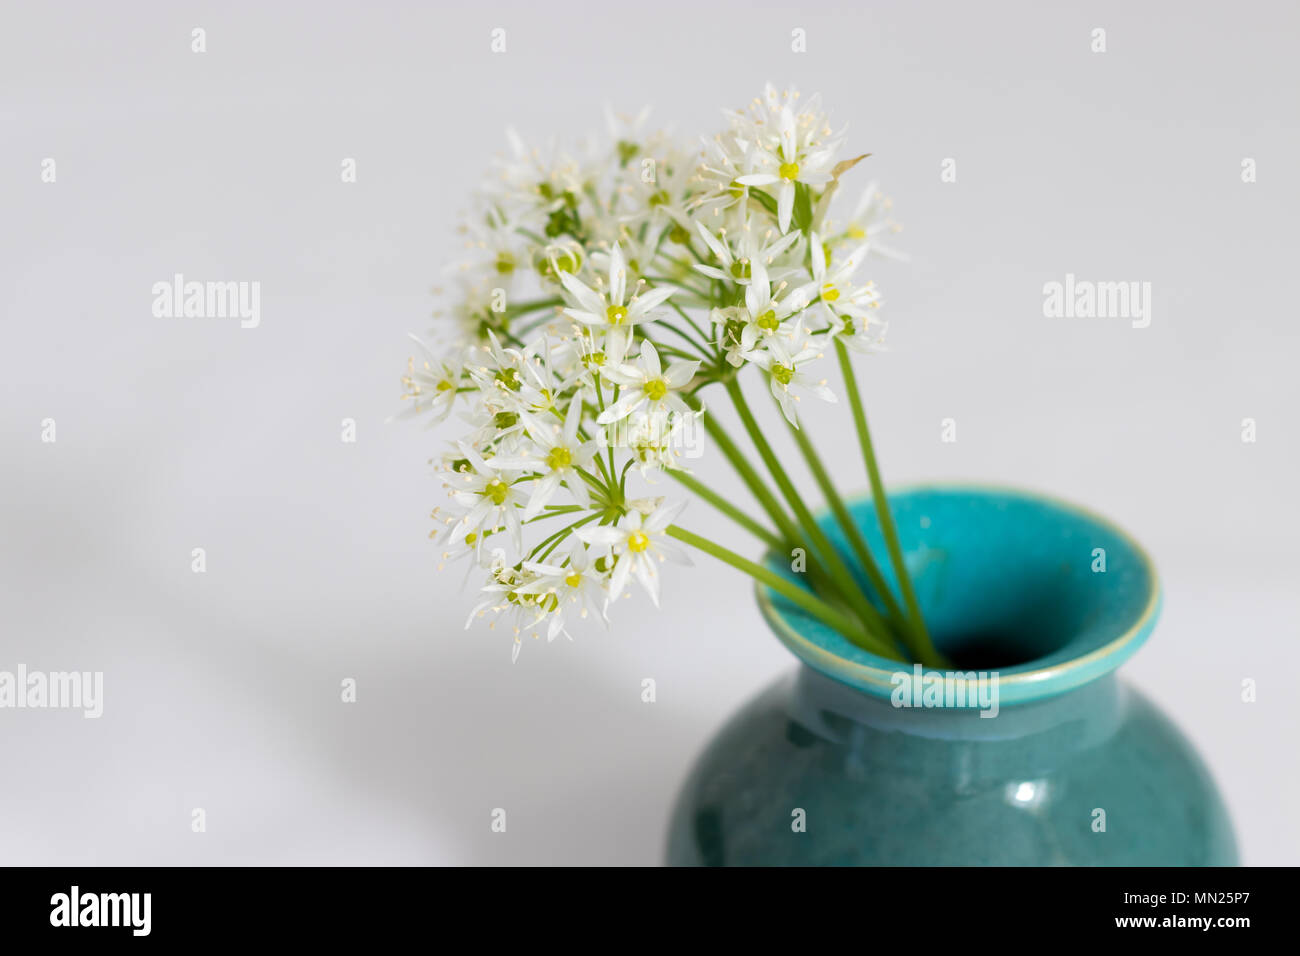 A posy of wild garlic flowers (Ramsons) in a handmade ceramic vase. - Stock Image